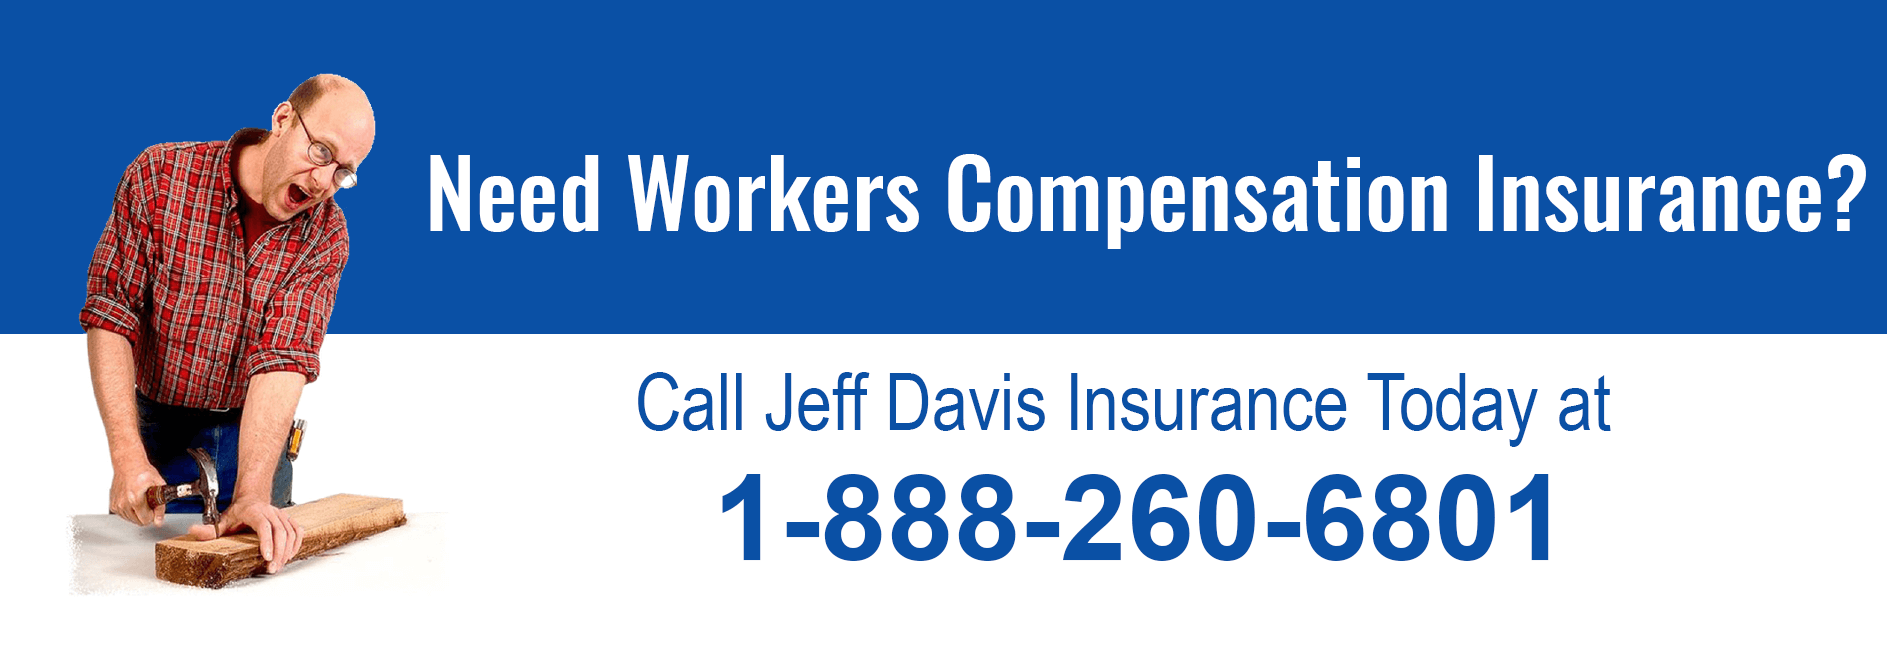 Need Workers Compensation Insurance?